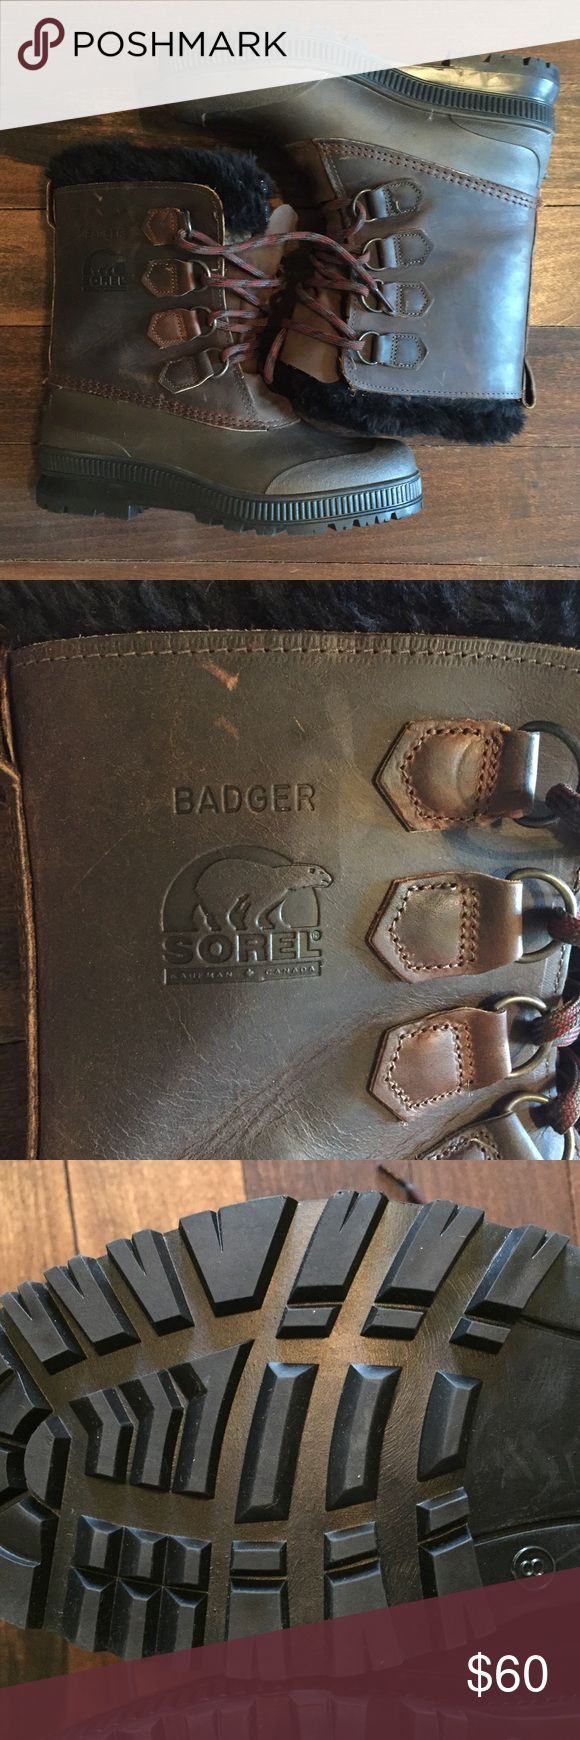 Badger SOREL Boots Men's 8 Great Condition Badger SOREL Boots Men's 8 Great Condition. These boots are fashionable, comfortable and like new! The tread looks brand new. These have only been worn a few times. Canadians know their boots! Wear these with a Northface fleece or Patagonia rain jacket to make the ultimate outfit. Sorel Shoes Boots